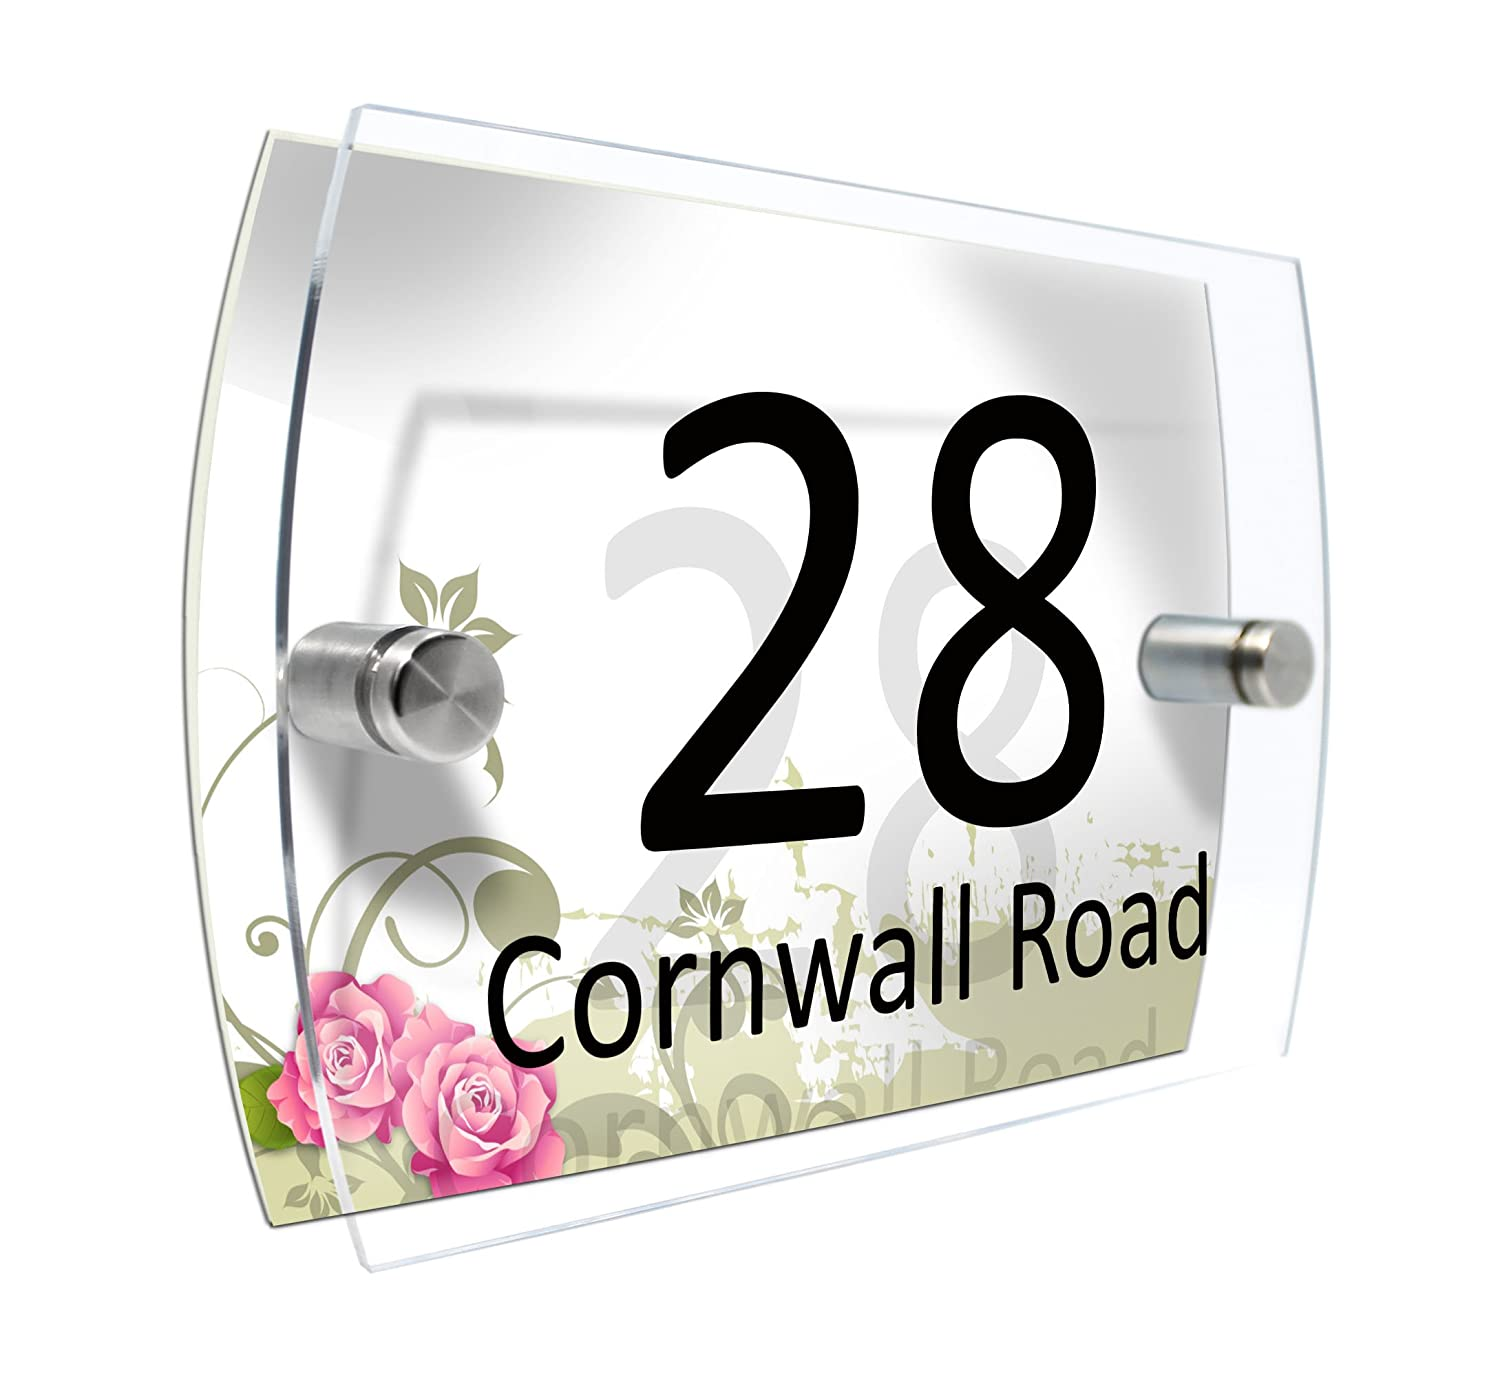 House Number Plaque Glass Effect Acrylic Sign Door Plate Marble Wall Display 2 Part Branded Acrylic (Grey Marble) CS PRINTING LIMITED